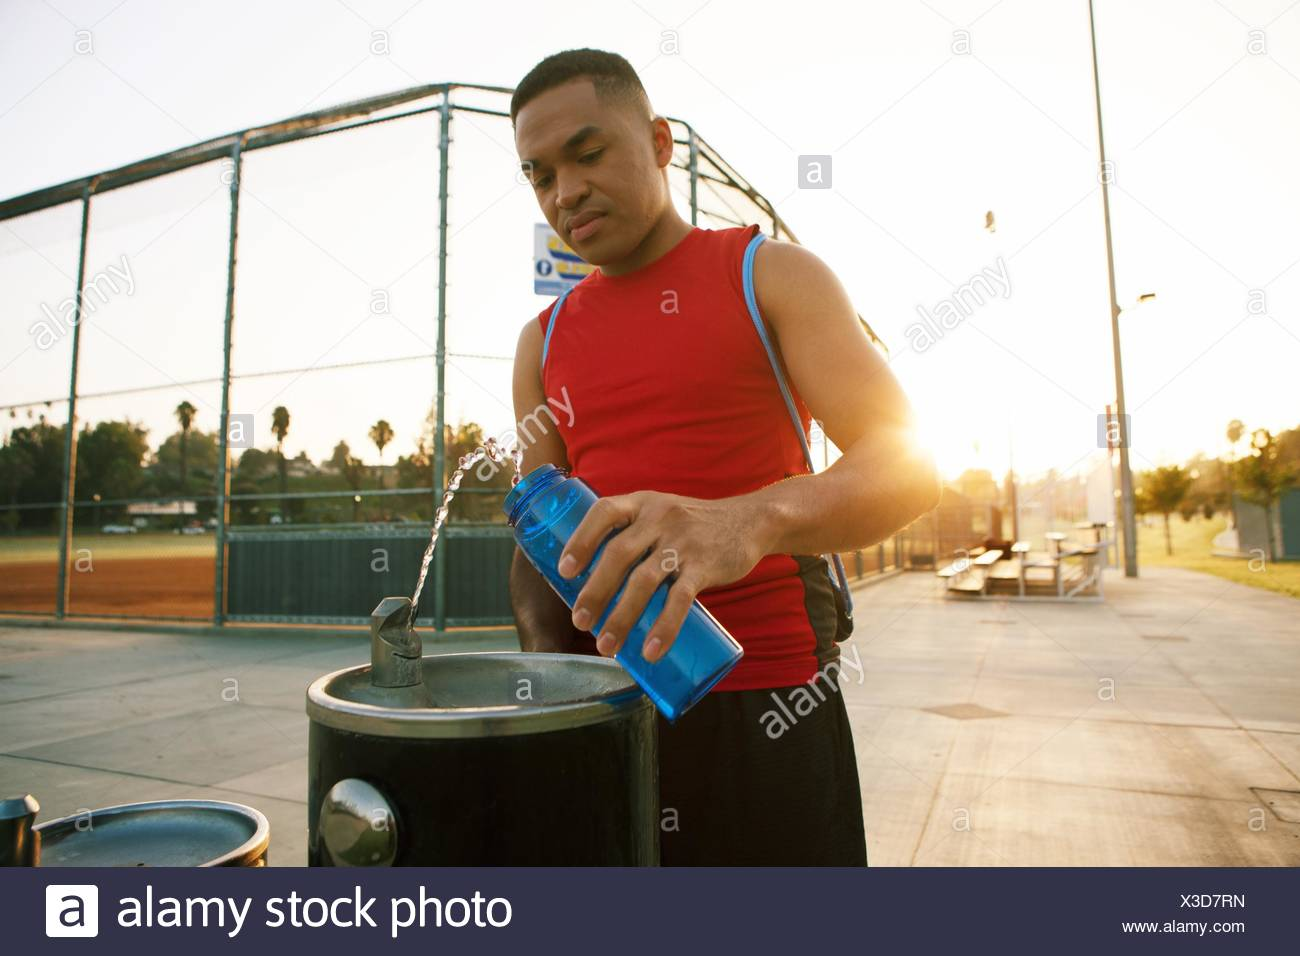 Young man filling water bottle from drinks fountain - Stock Image